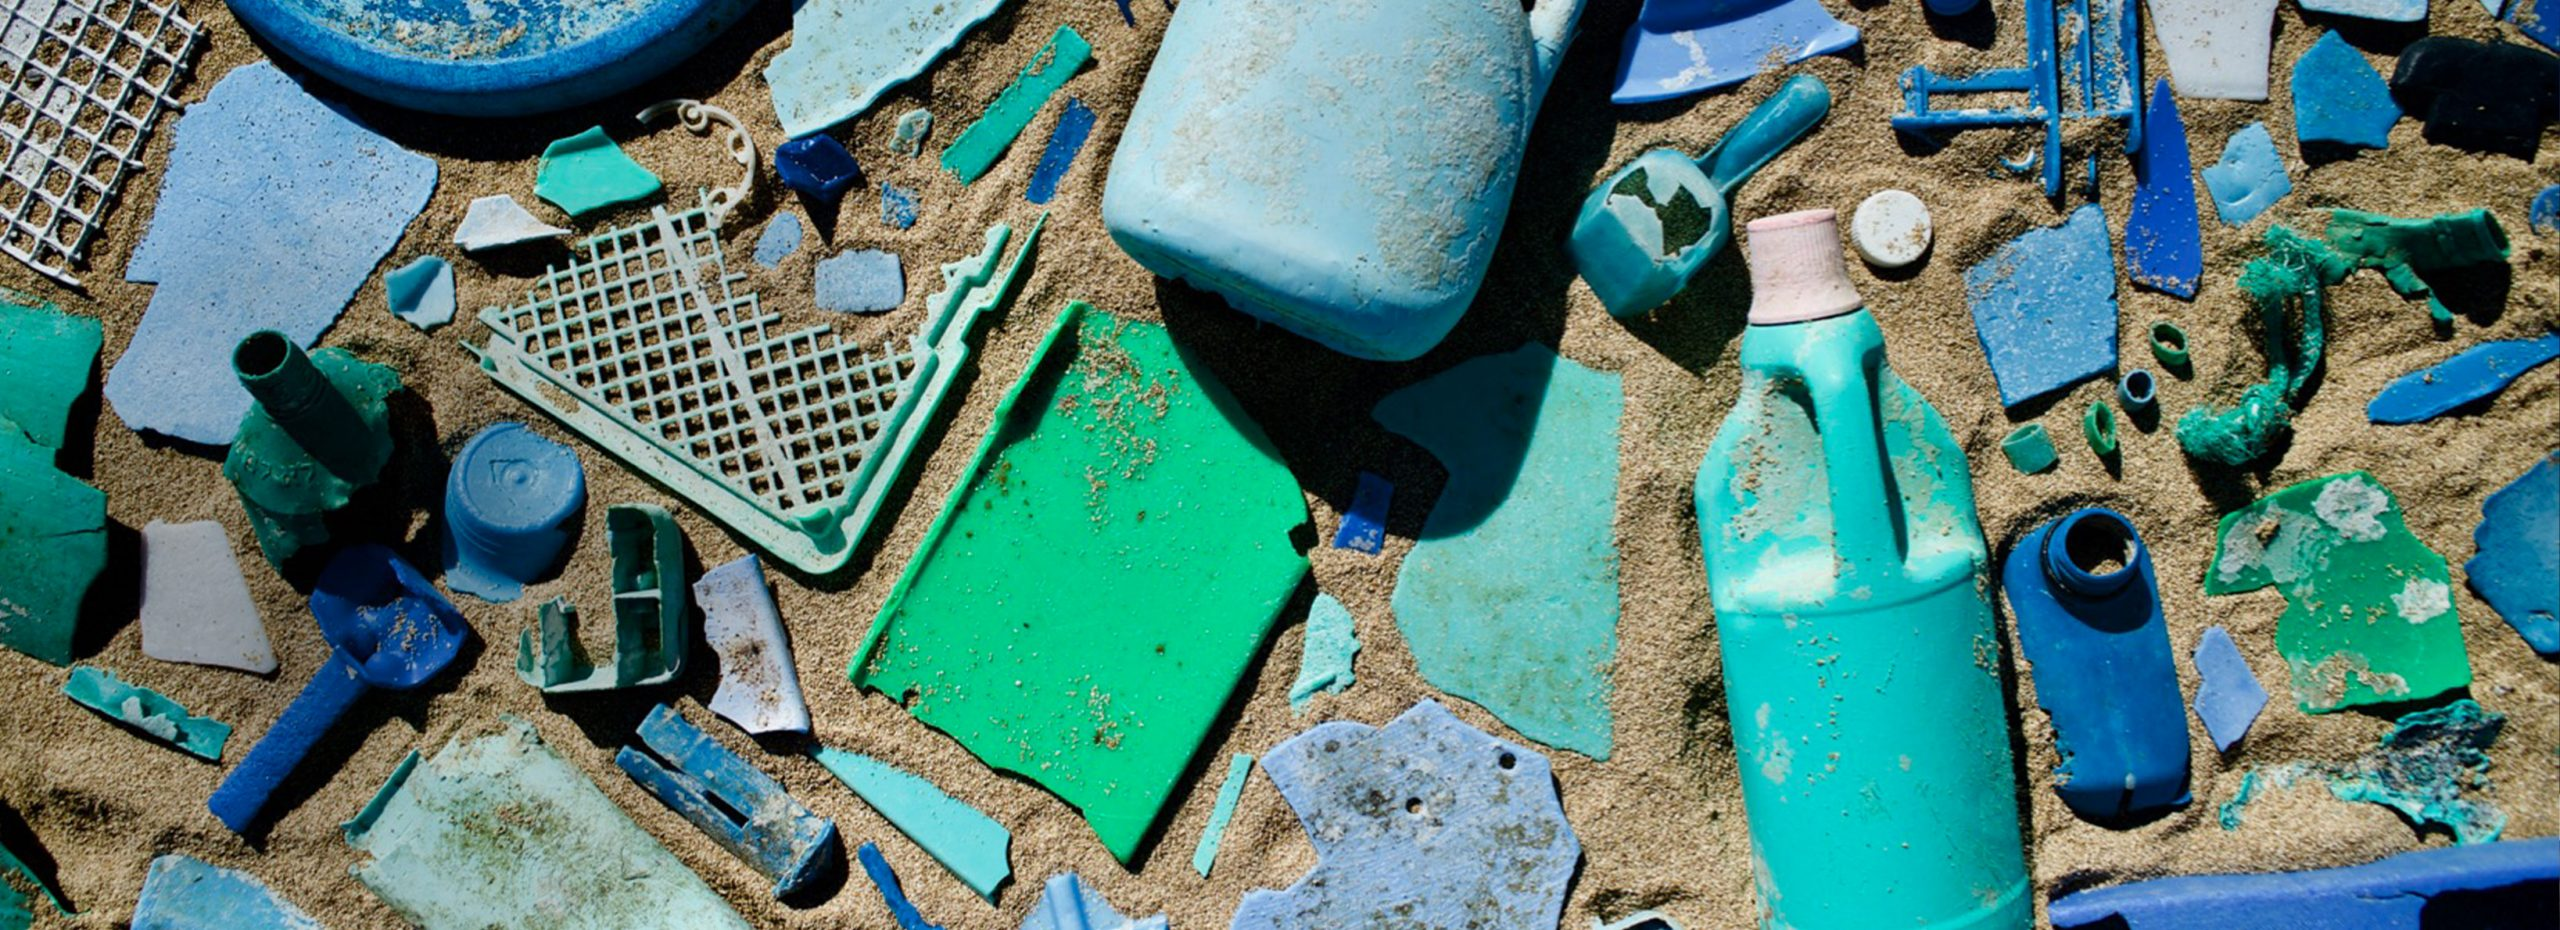 A Mid-Year Review of California's Plastic Policy